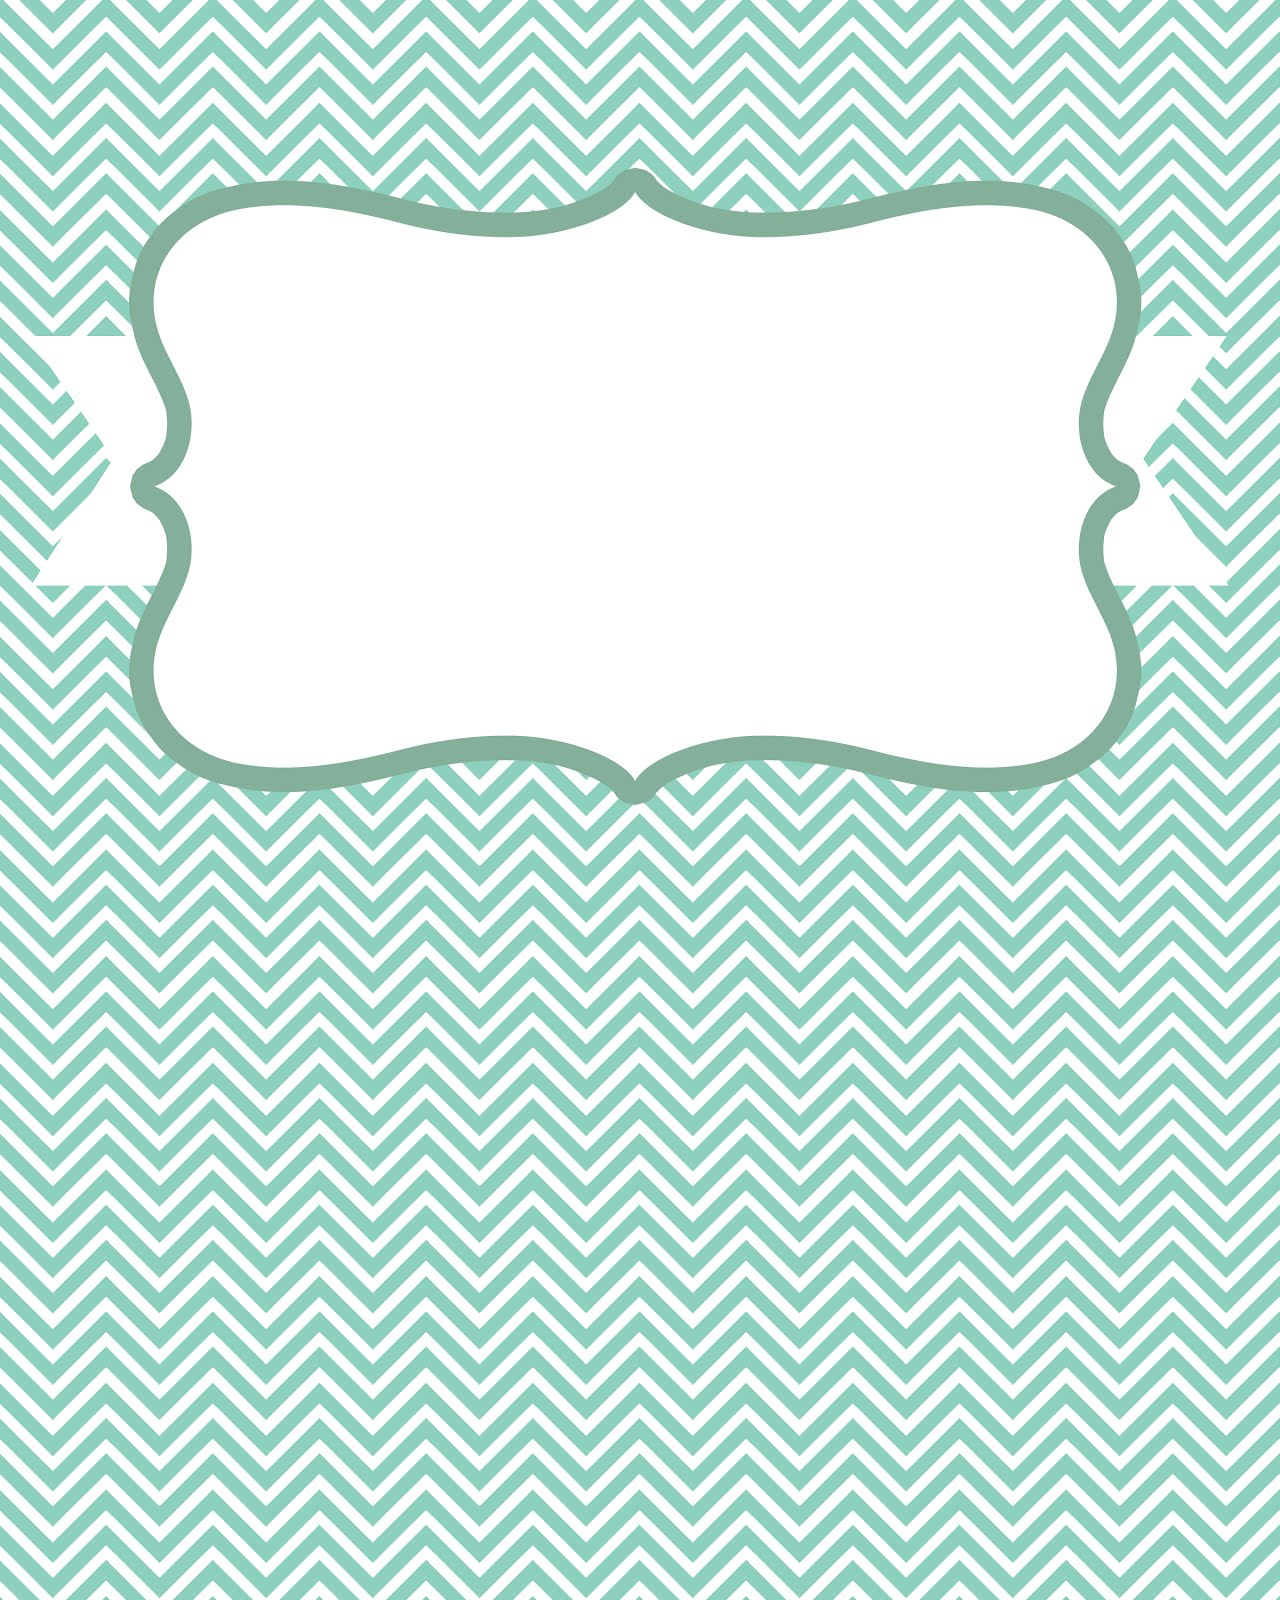 Seventh And Bliss, Binder Covers-Freebie